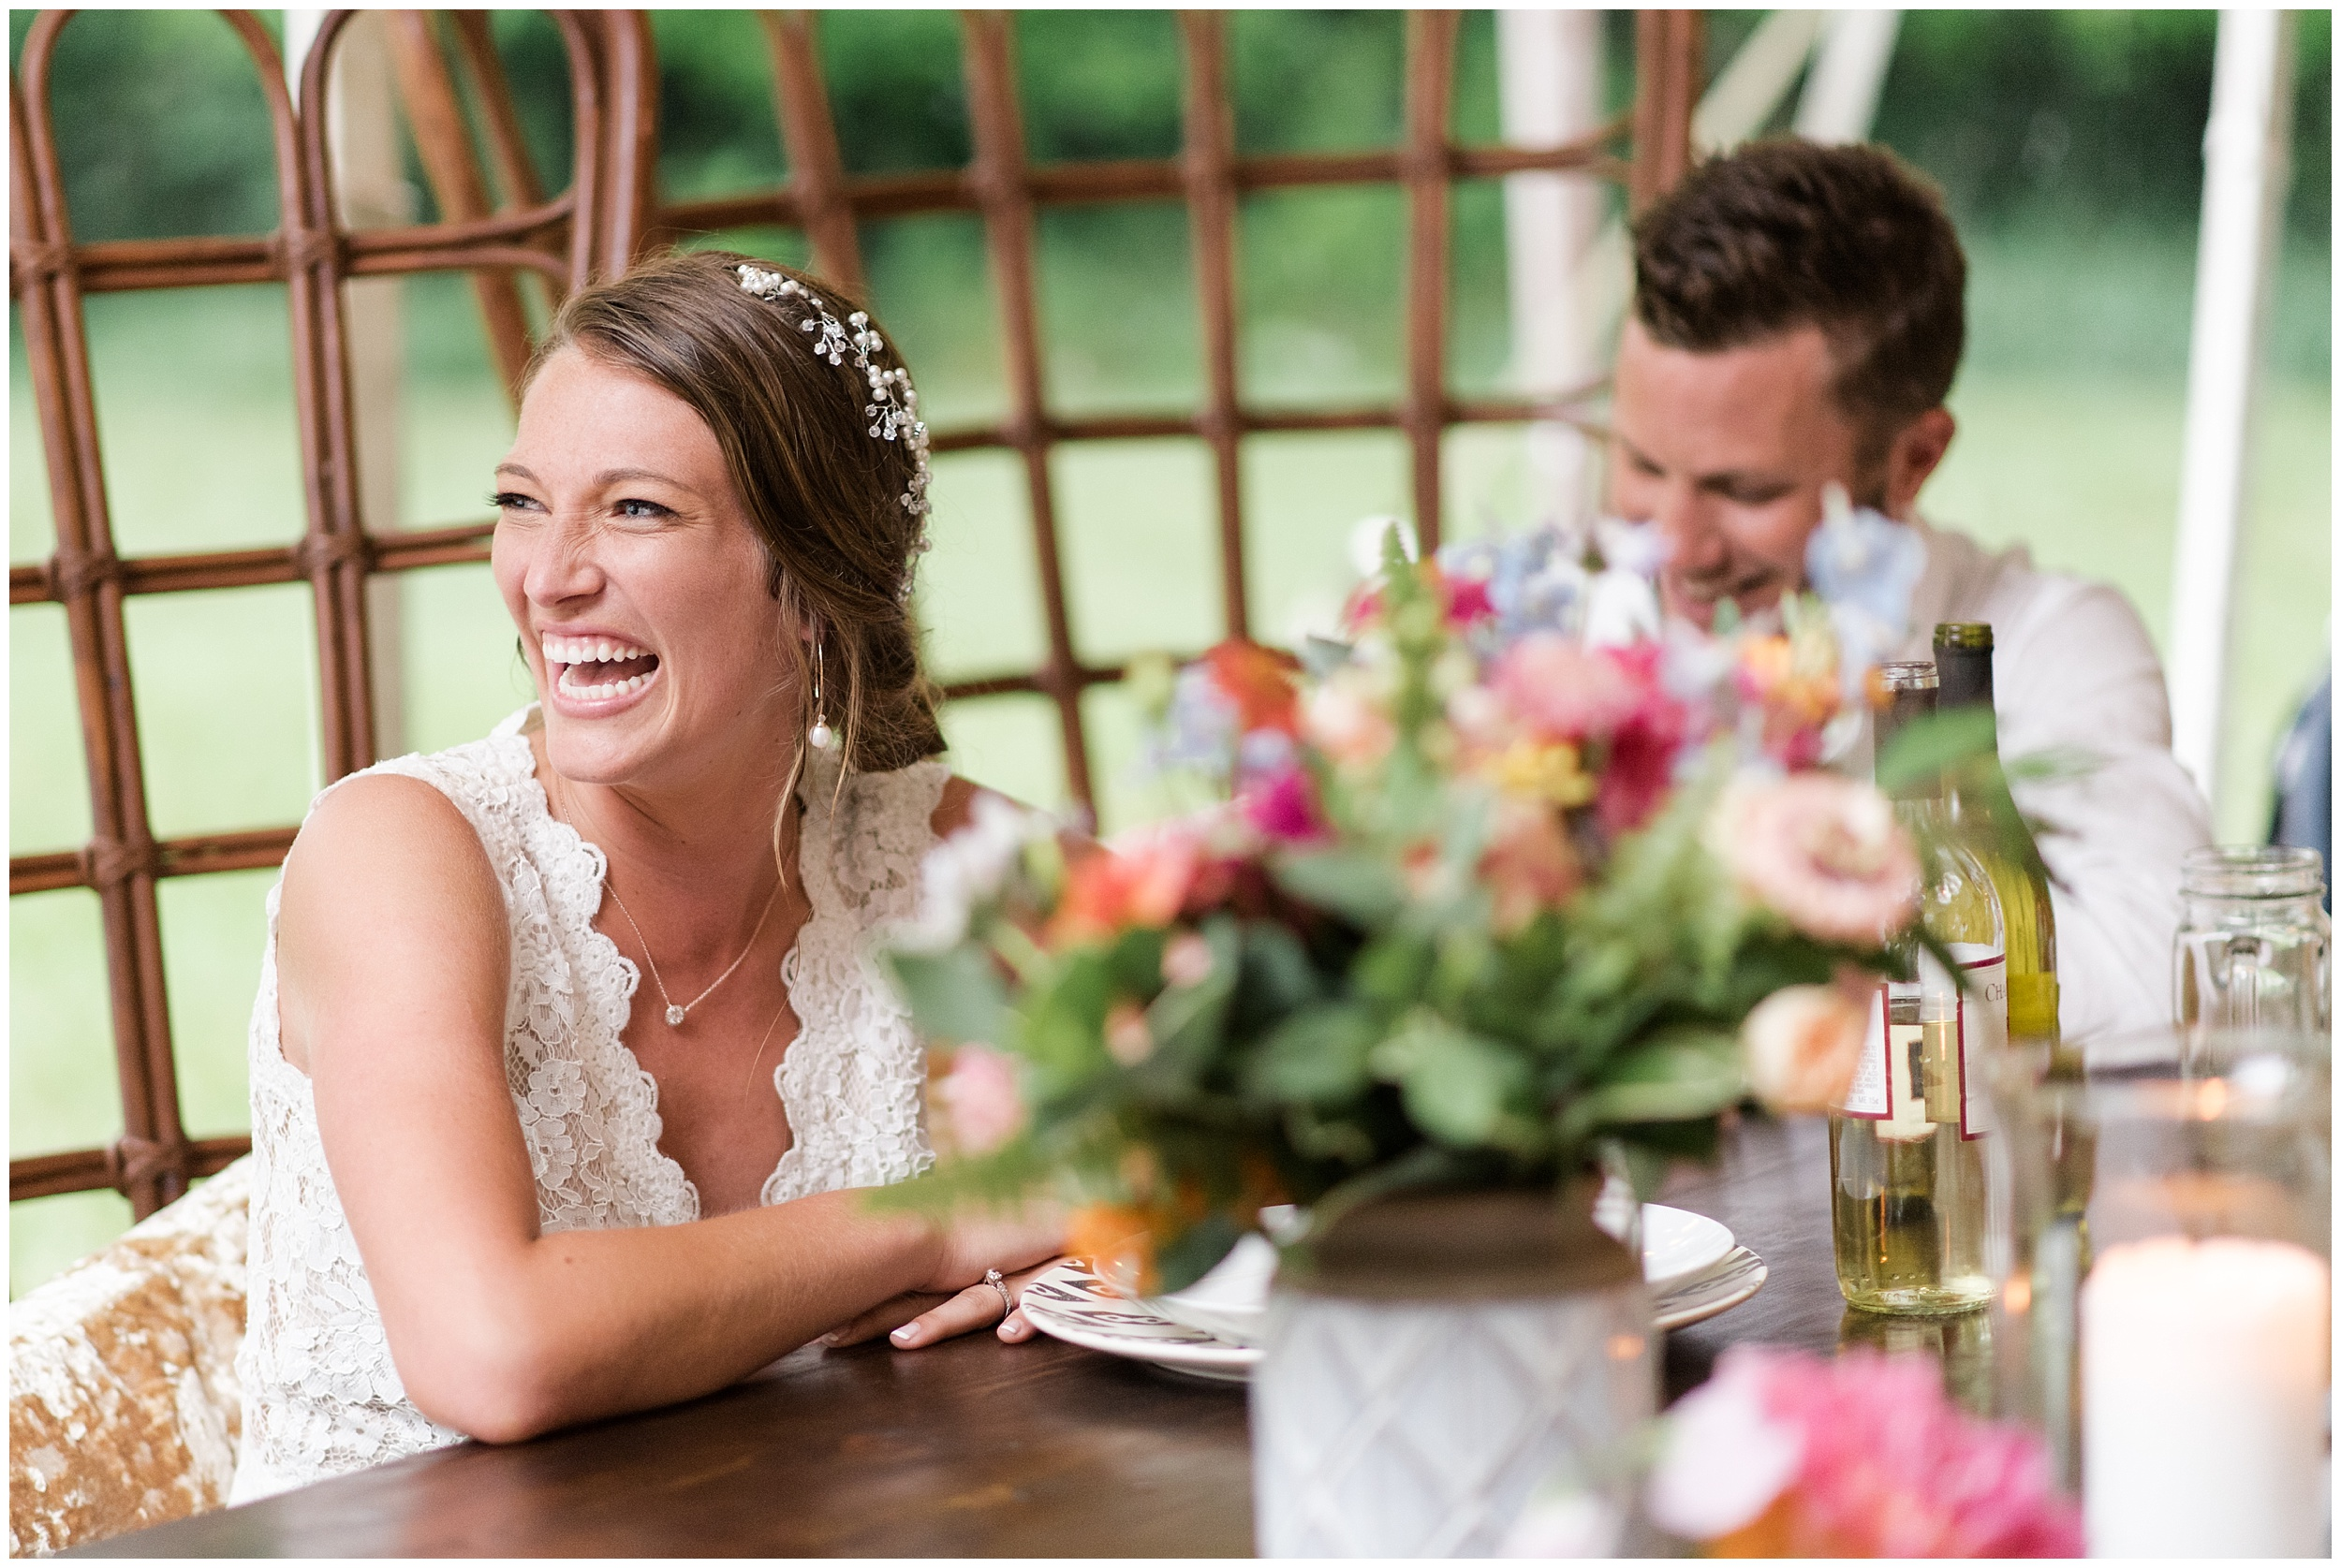 Whimsical-Ethereal-July-Kalamazoo-Wedding-Bright-Airy-Documentary-Milwaukee-Photographer_0088.jpg